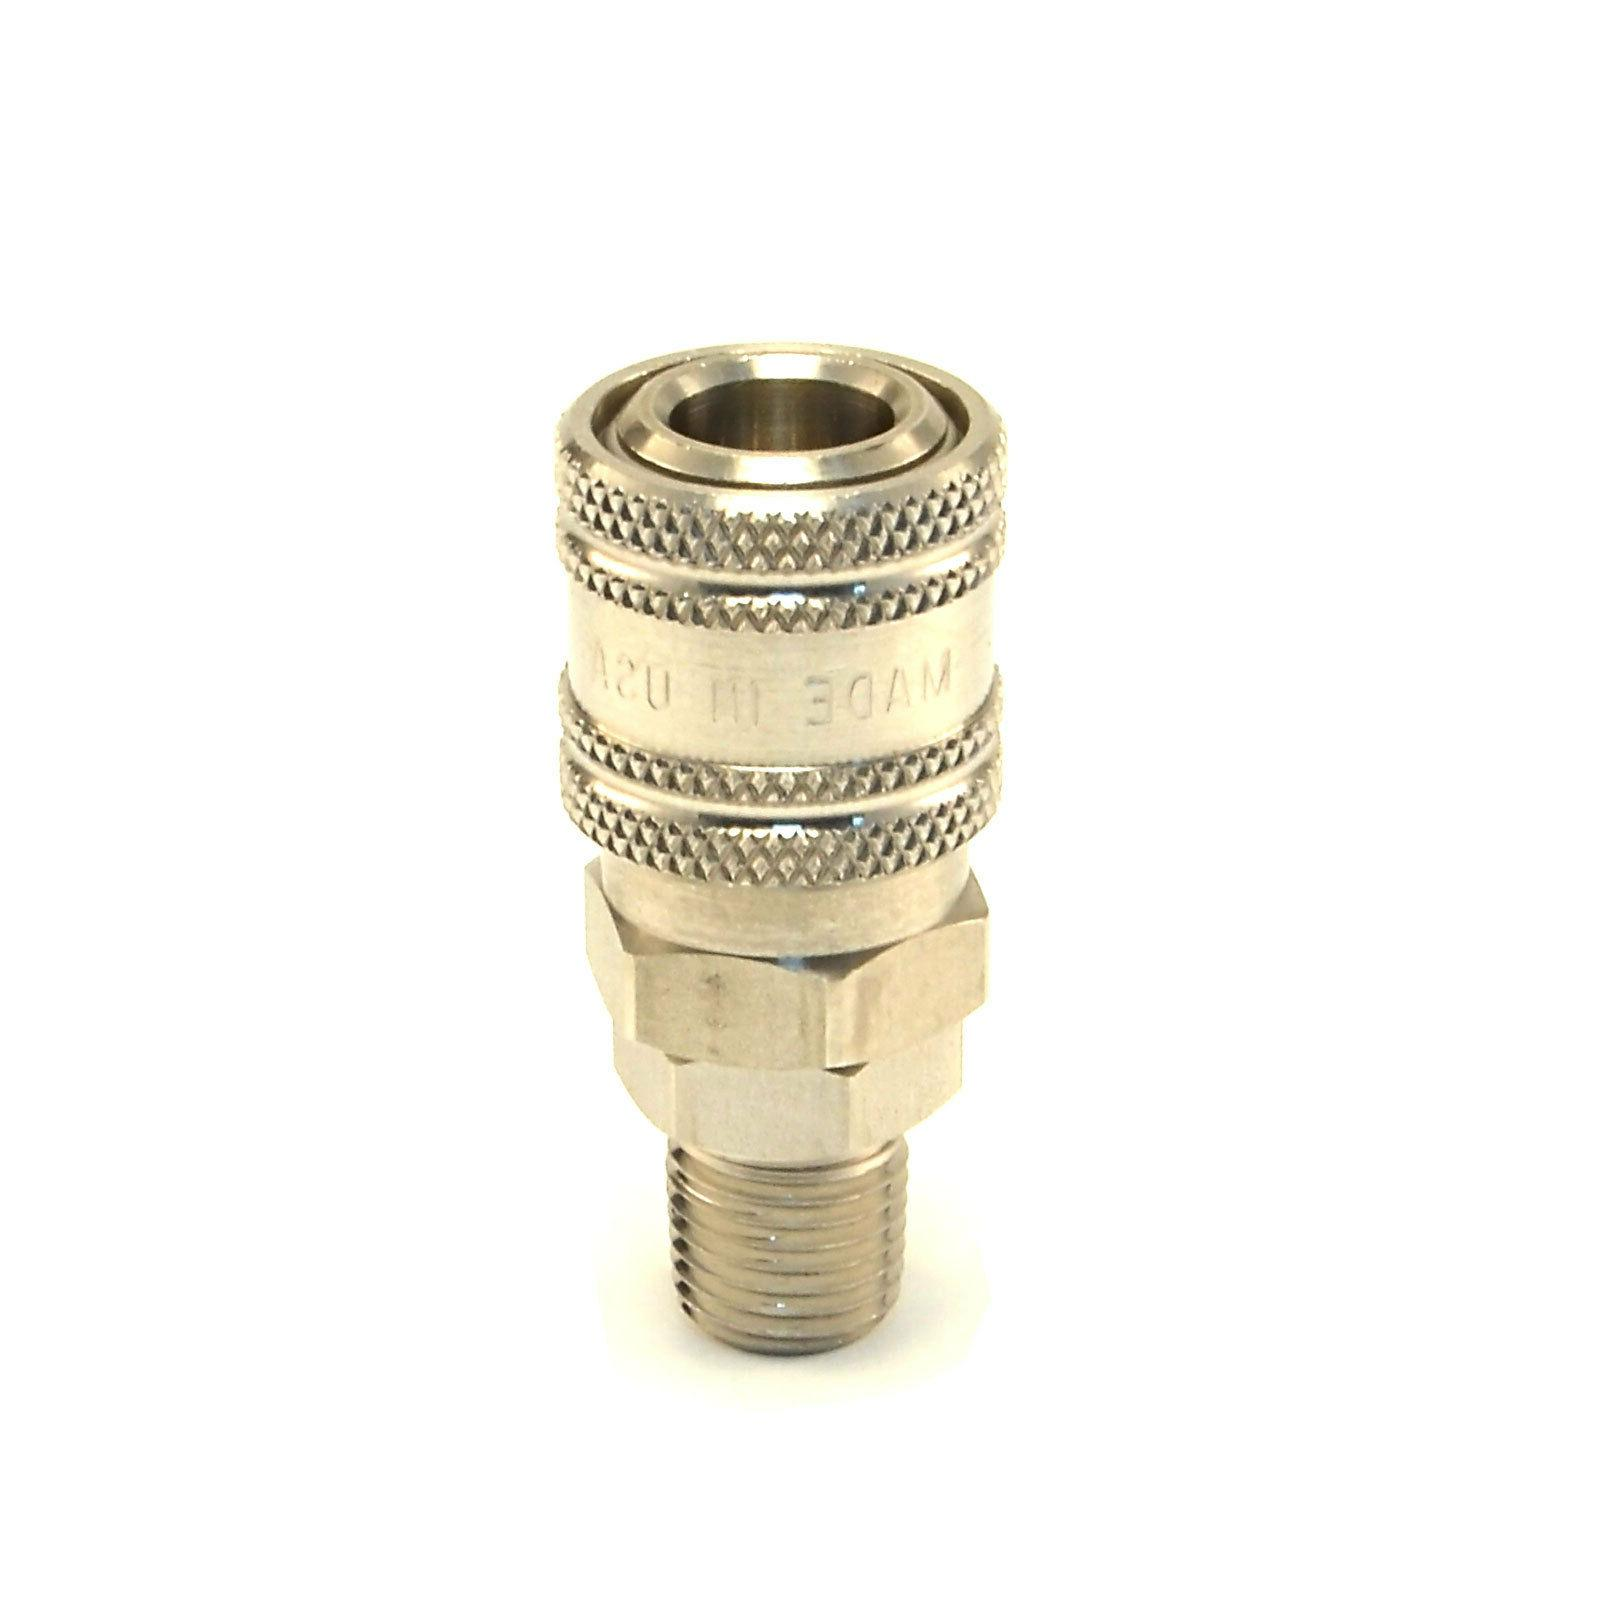 "STAINLESS STEEL Quick Connect Coupler 1/4"" Male NPT Air Hose"